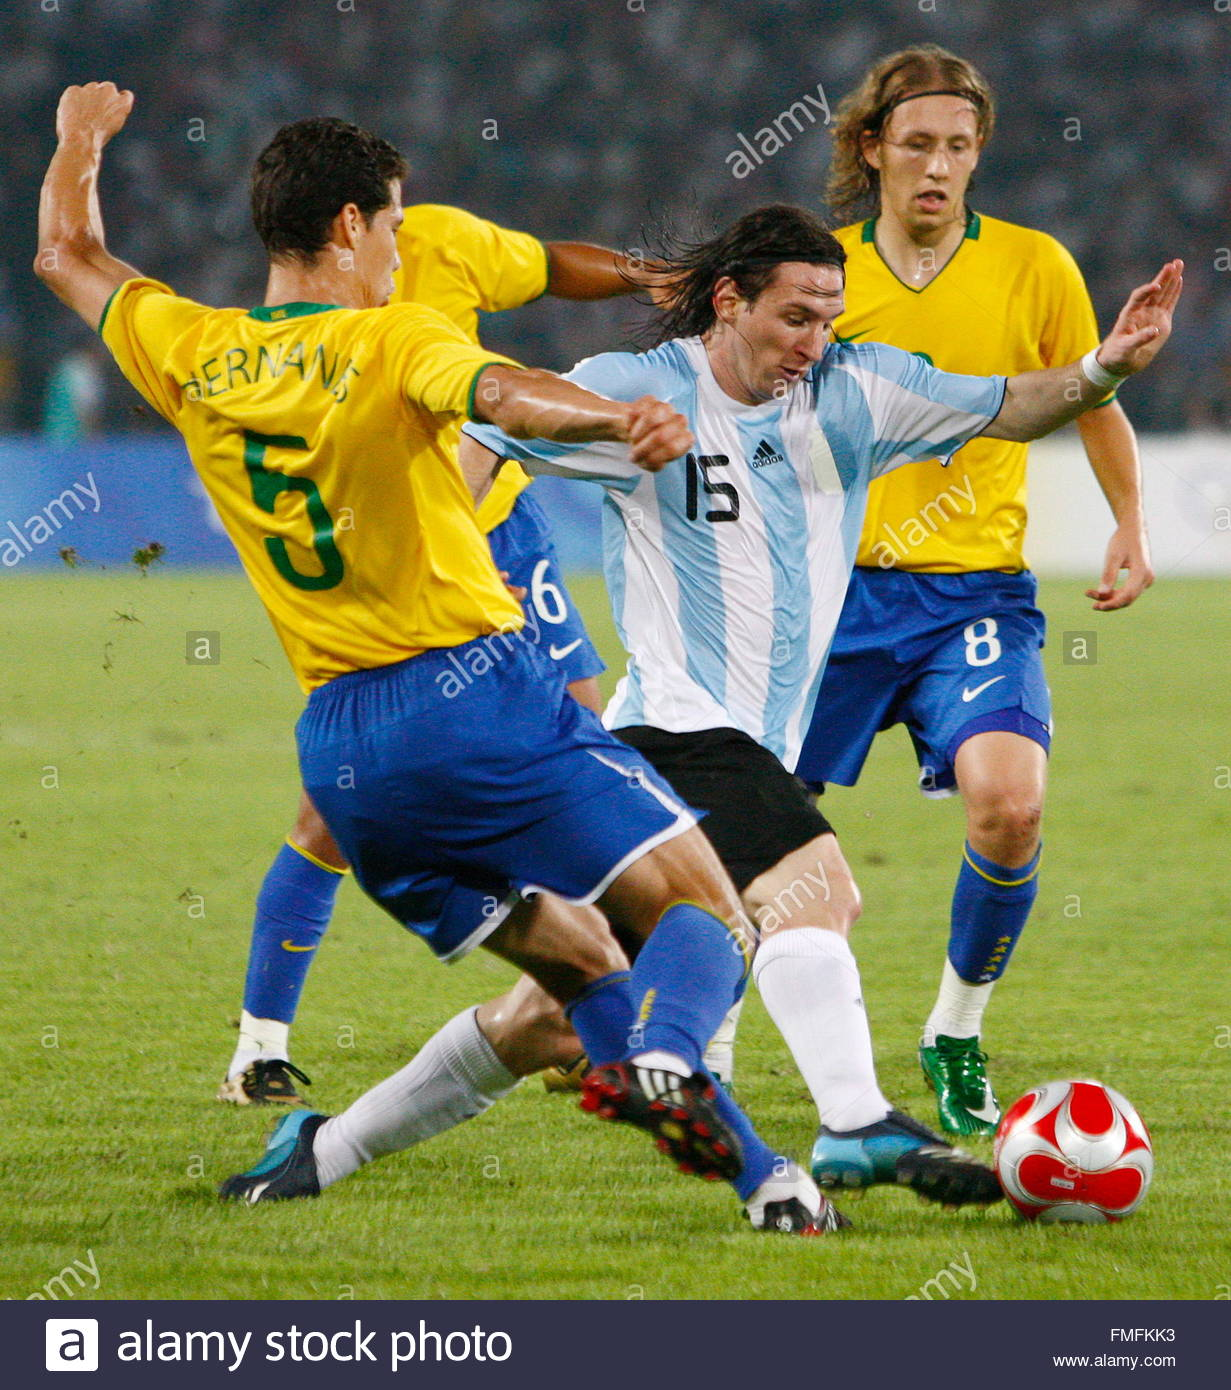 FKK - Brazil Stock Photo - epa01456932 Lionel Messi from Argentina (C) vies with Hernanes (L) and Lucas (R) from Brazil during the men's Football semi-final match ...